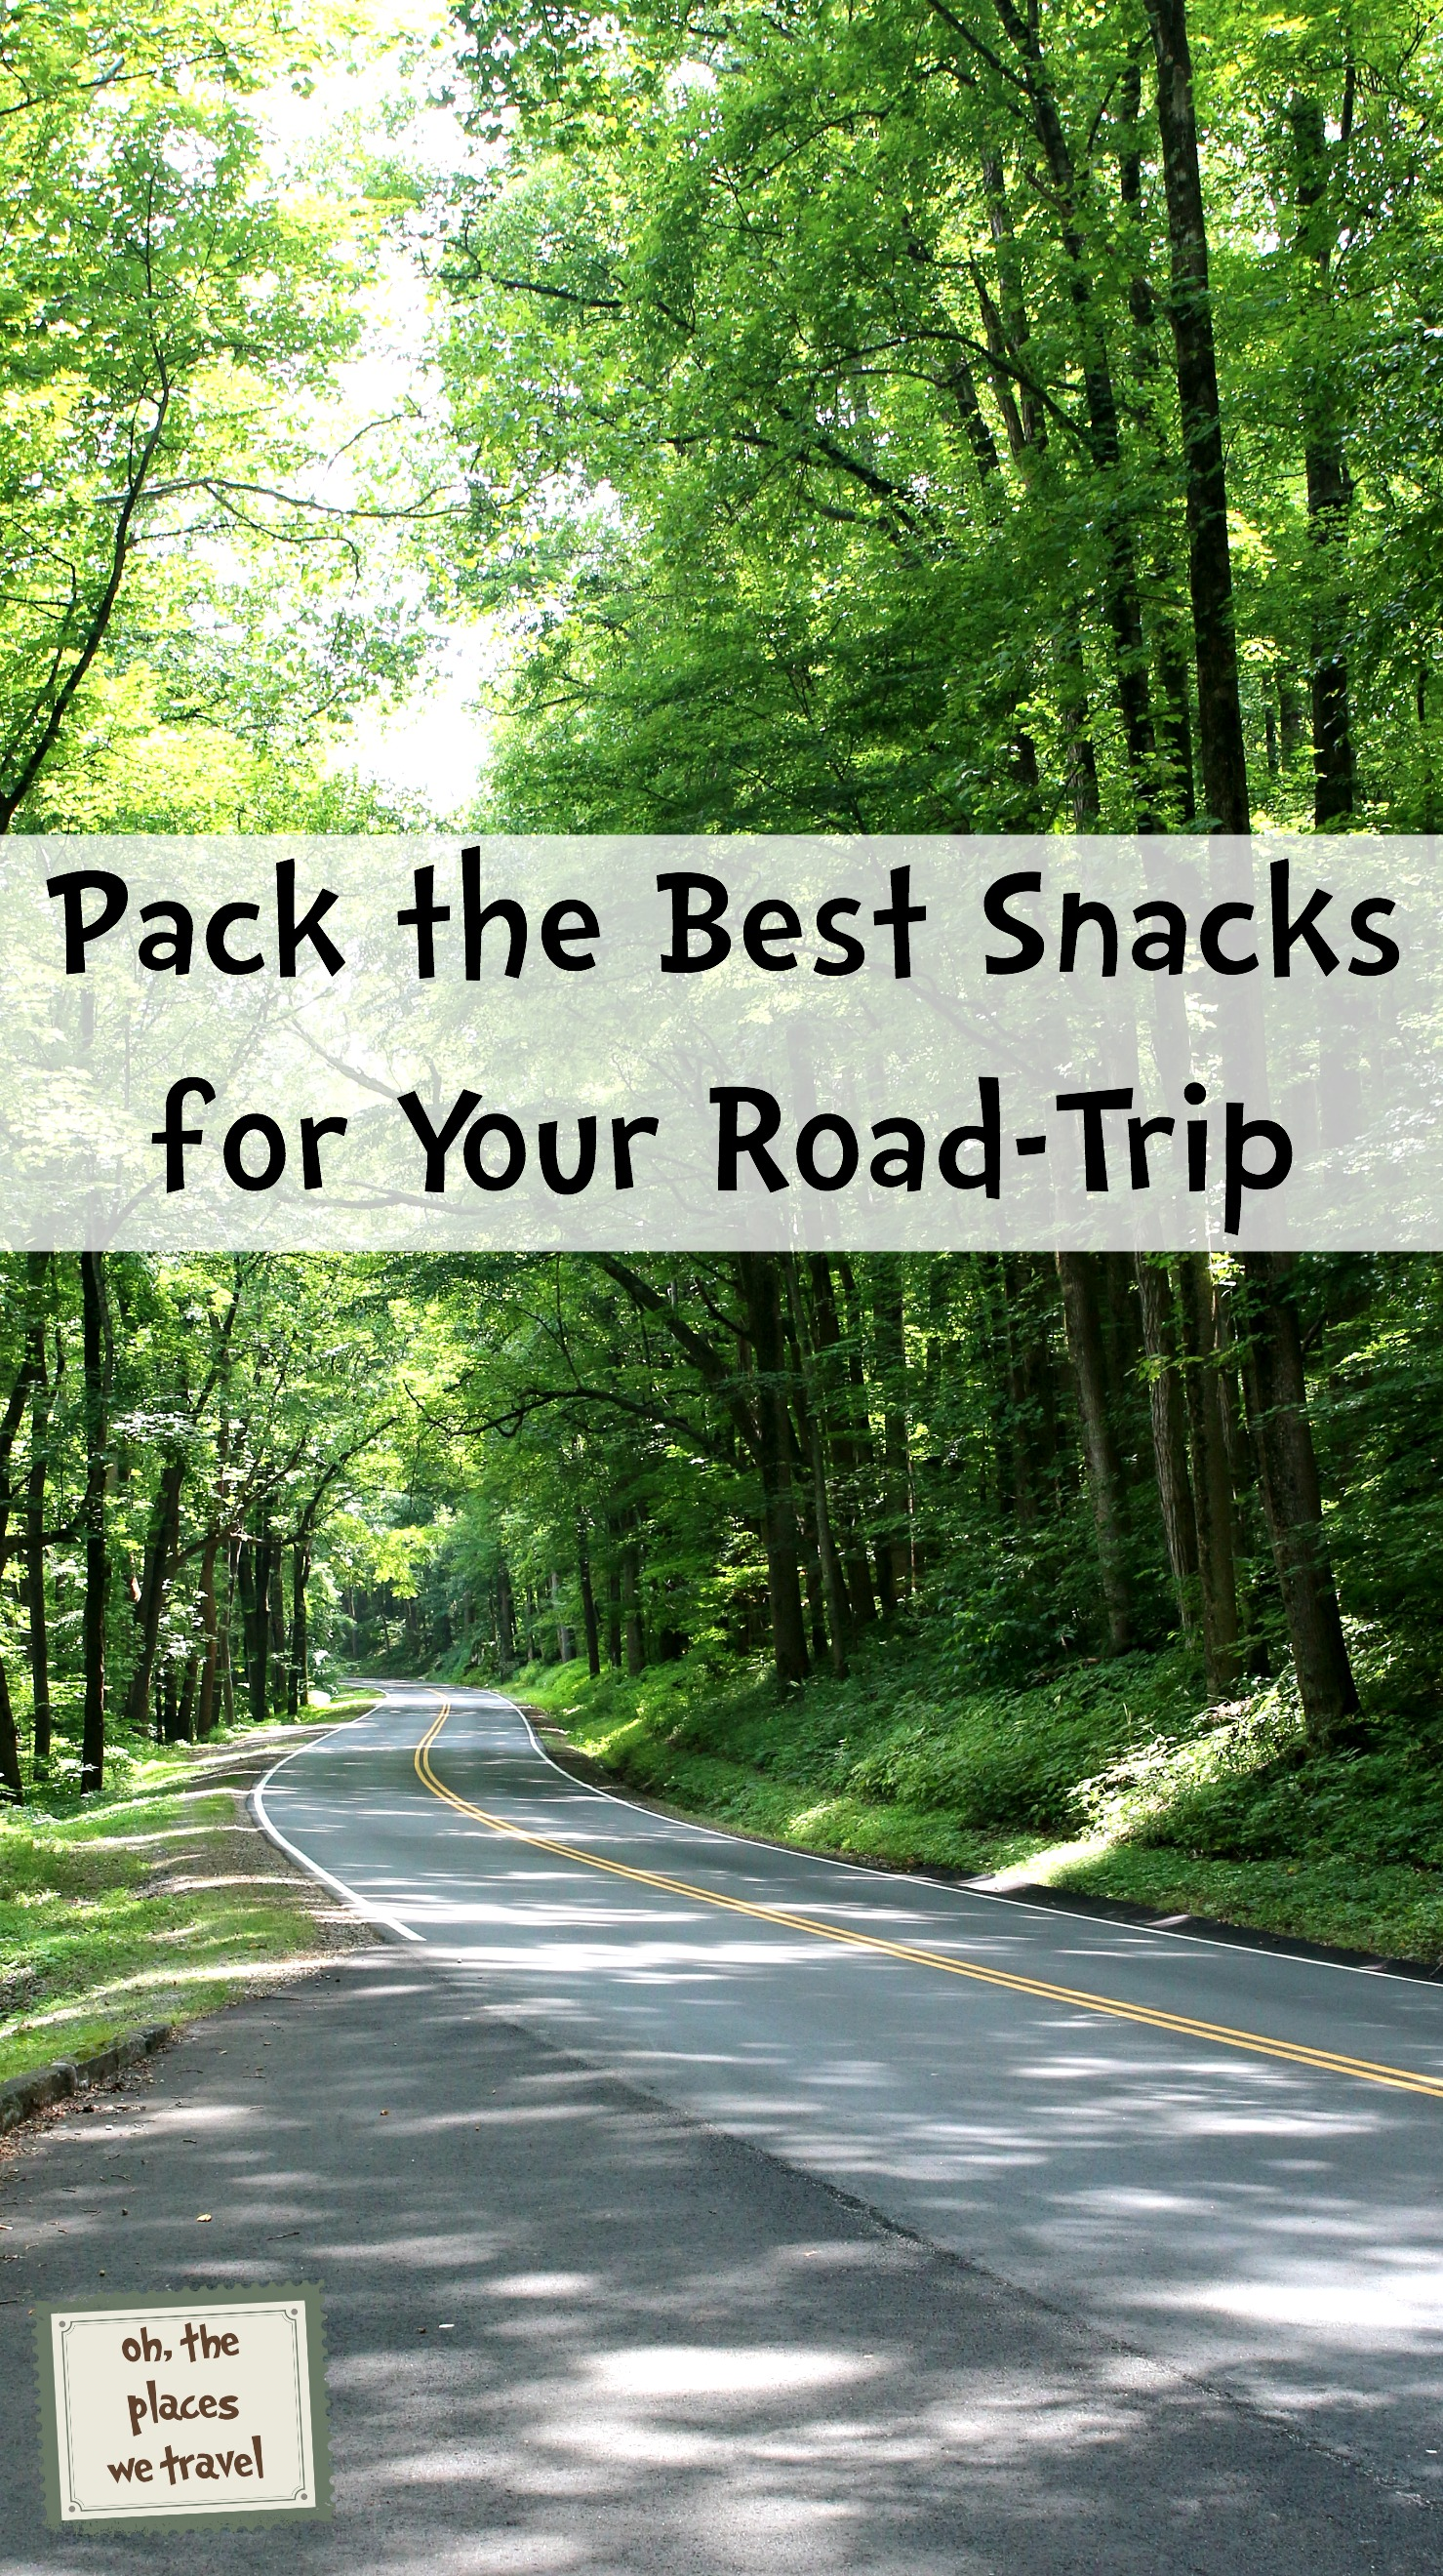 Pack the Best Snacks for Your Road-Trip